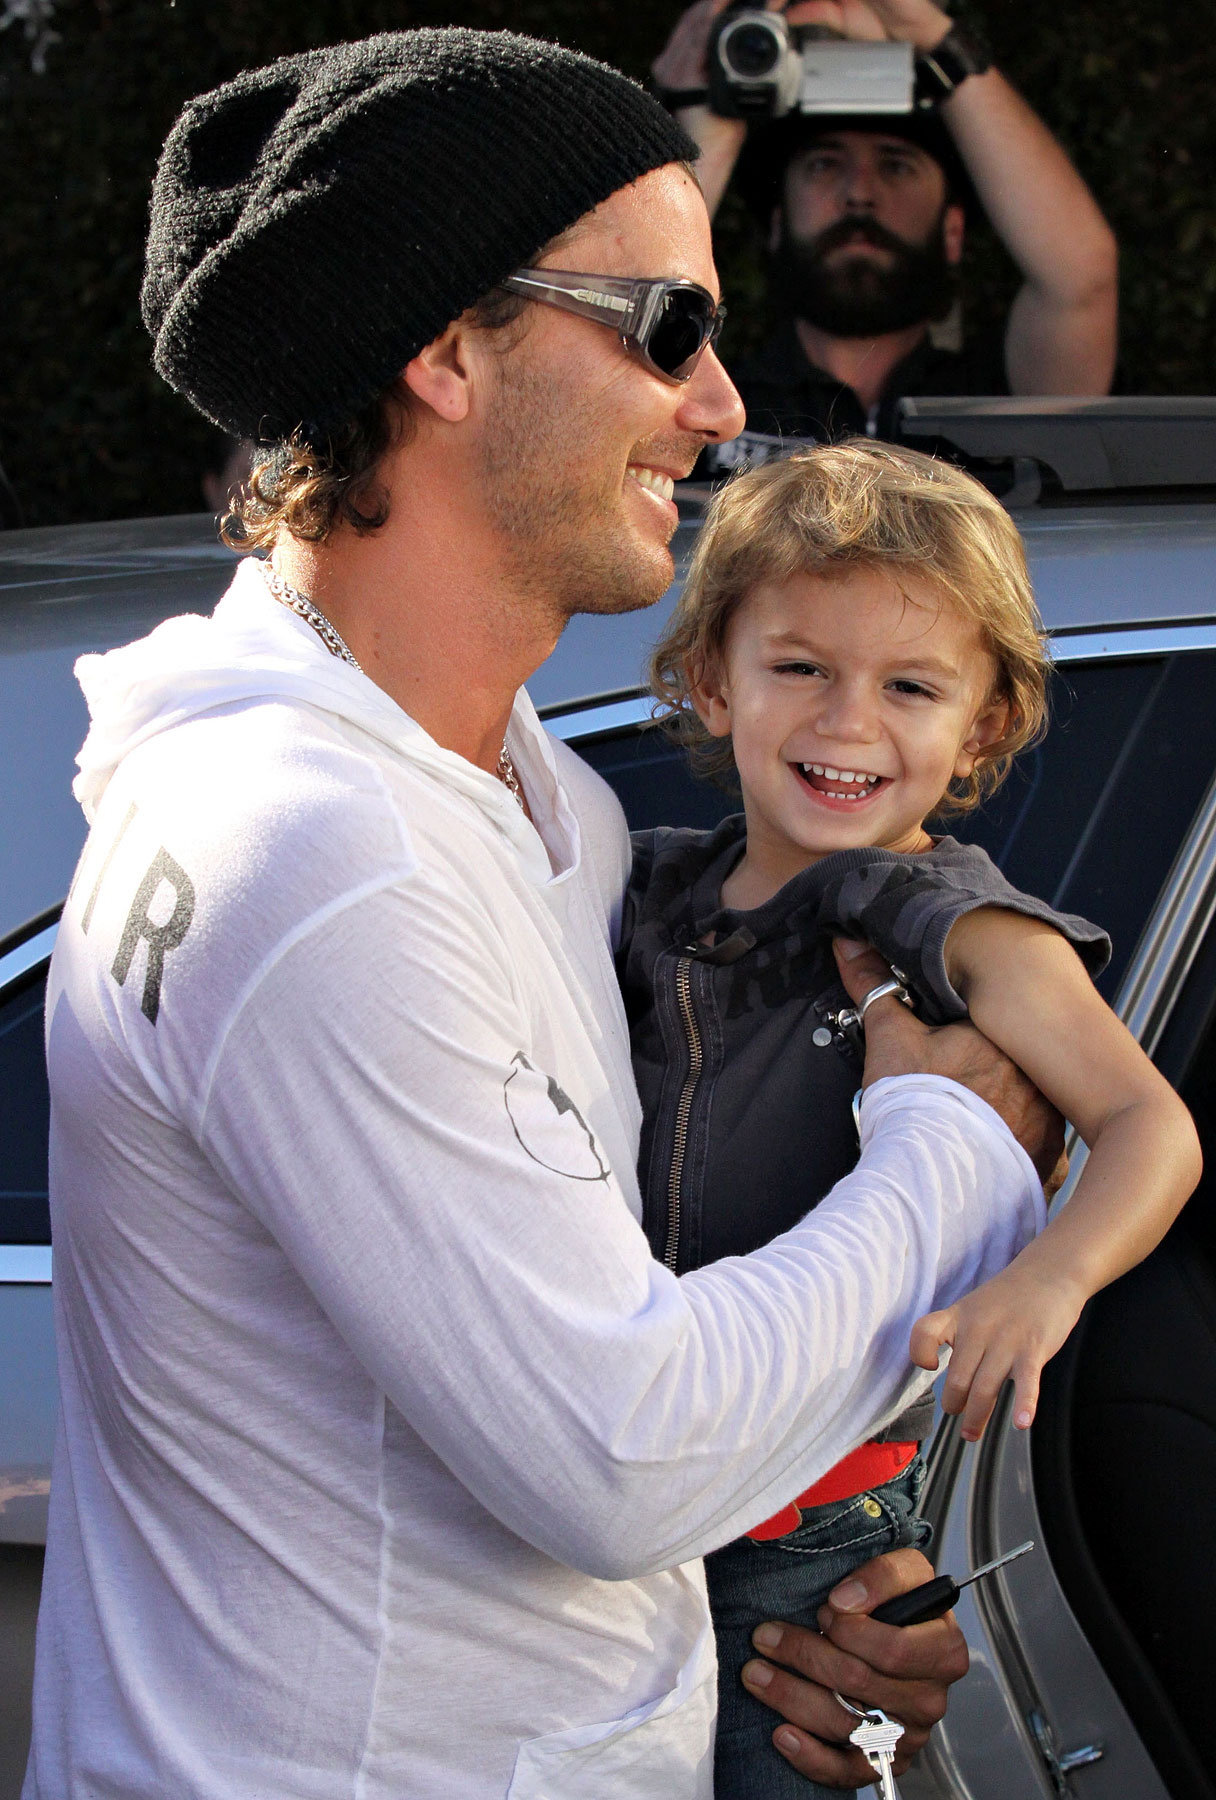 Gavin Rossdale and Kingston: Father-Son Tour Buddies